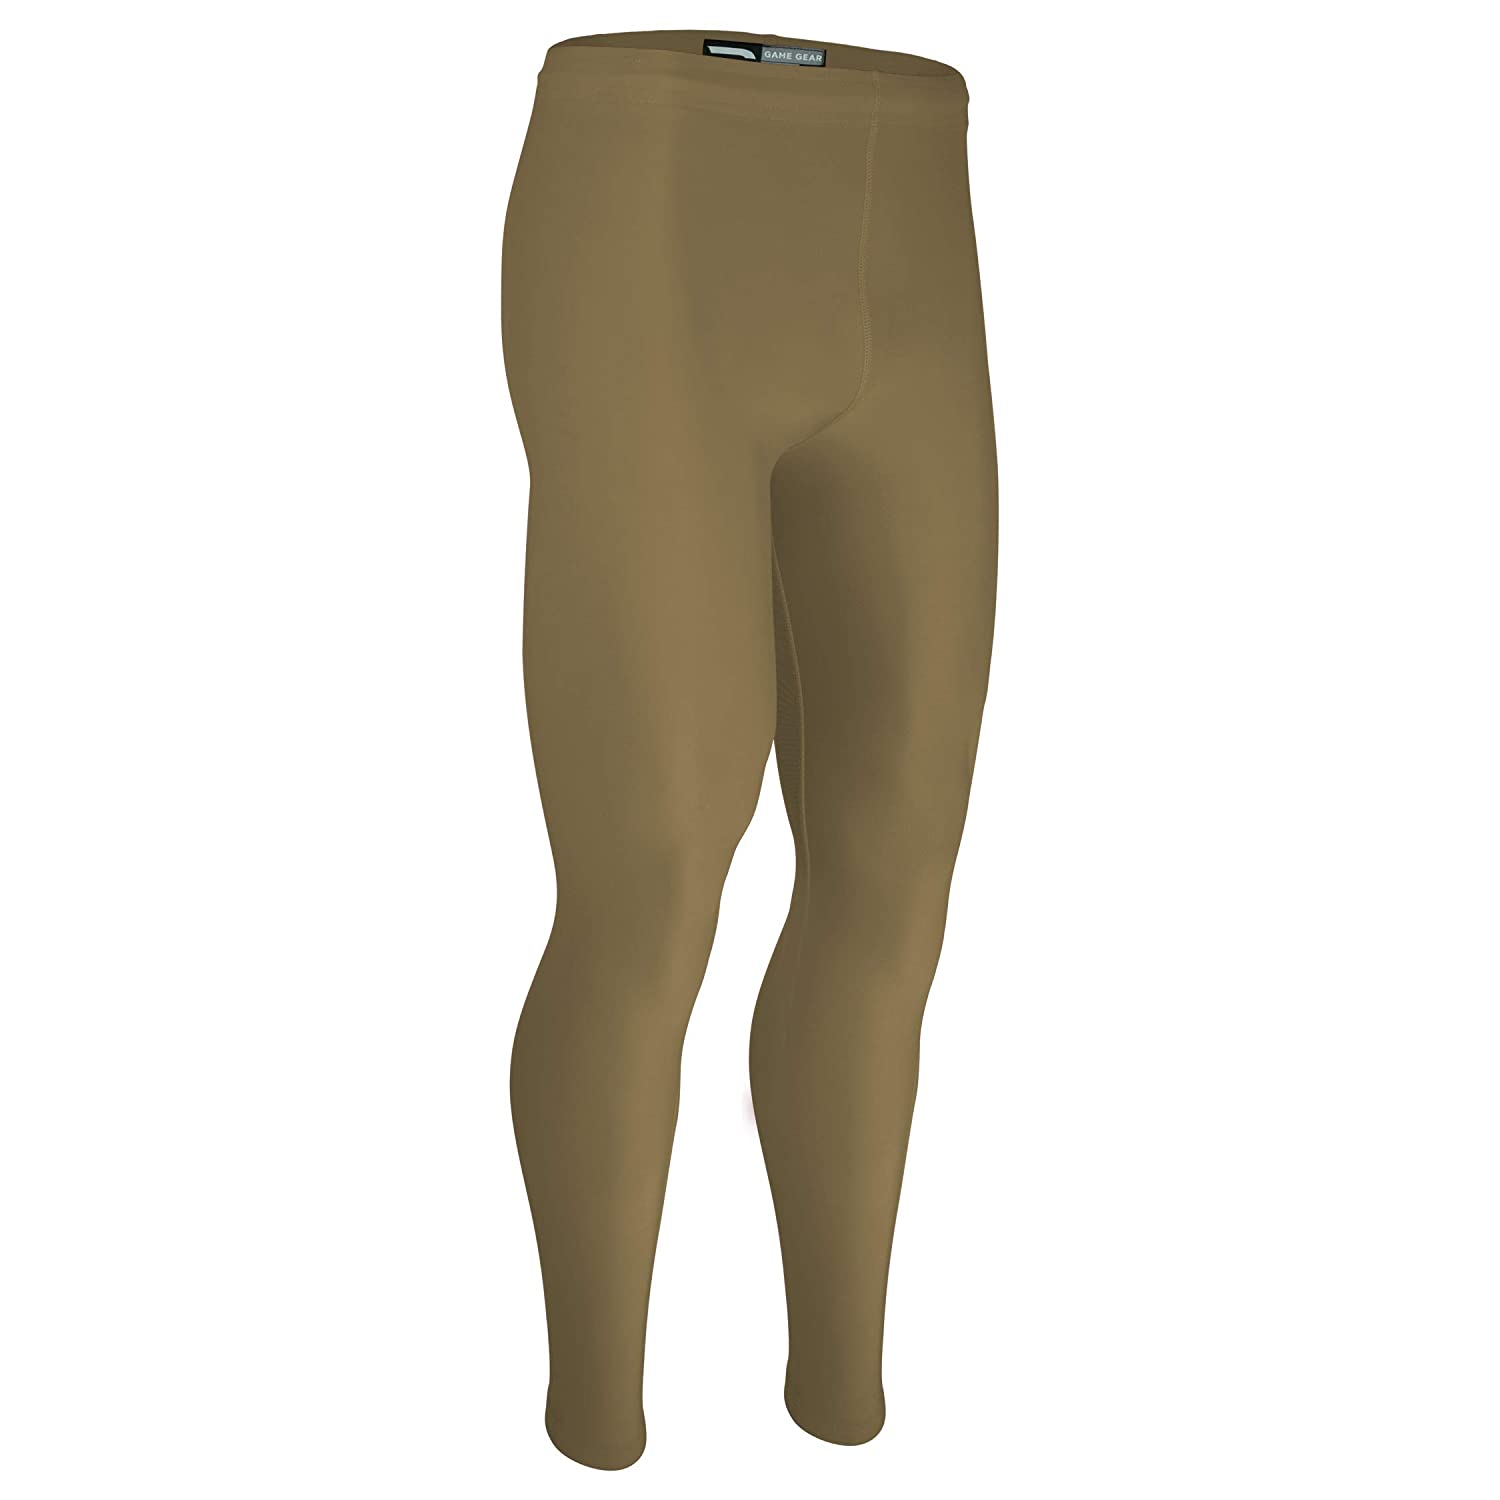 599e1b7902260 Amazon.com: Game Gear HT-112-CB Adult Men's and Women's Compression Ankle  Length Tights with Draw String: Clothing